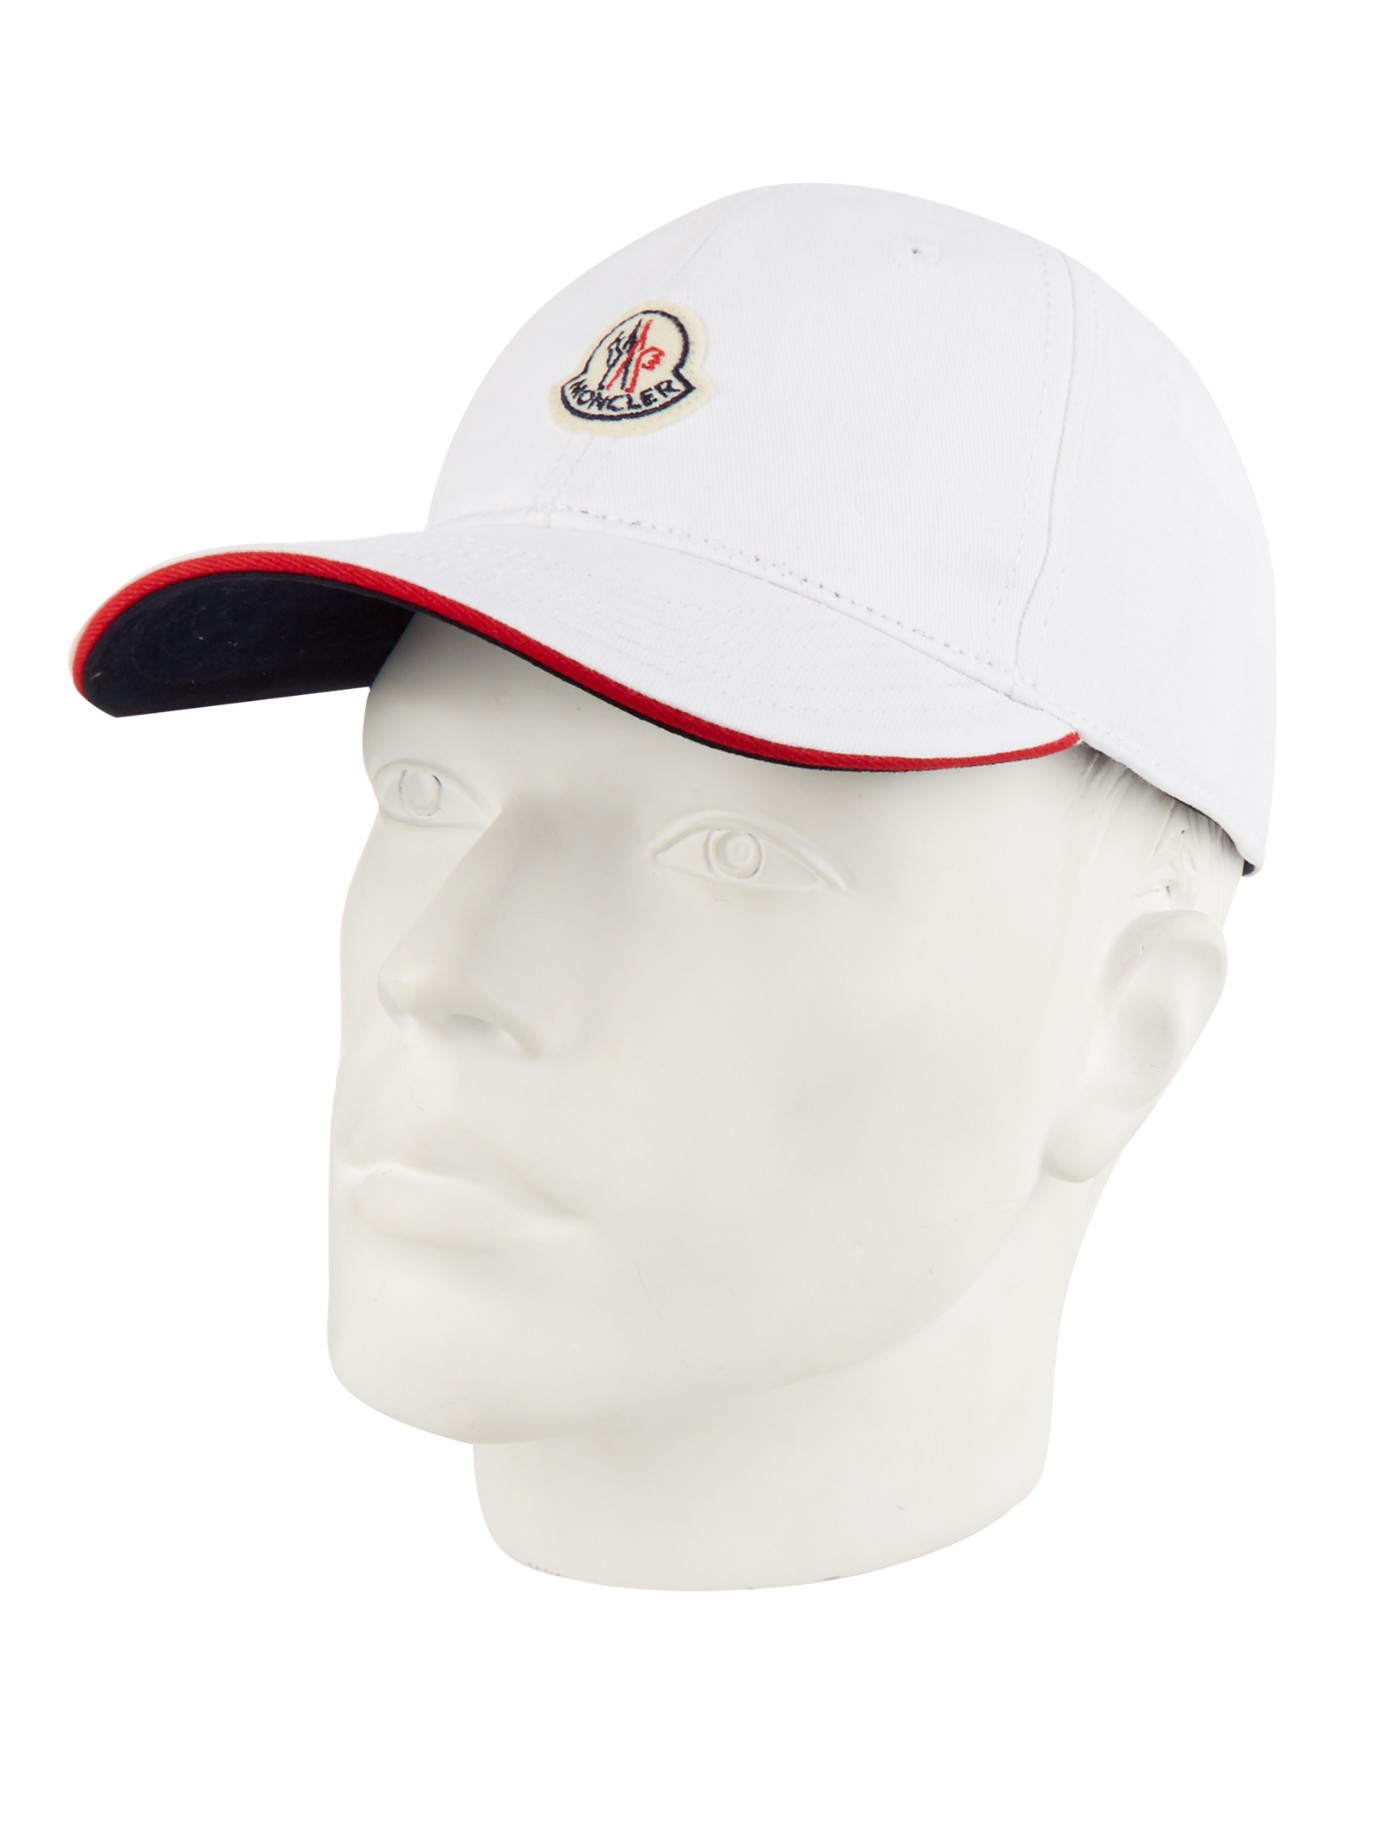 Lyst - Moncler Logo Cap in White for Men 08f6925933f